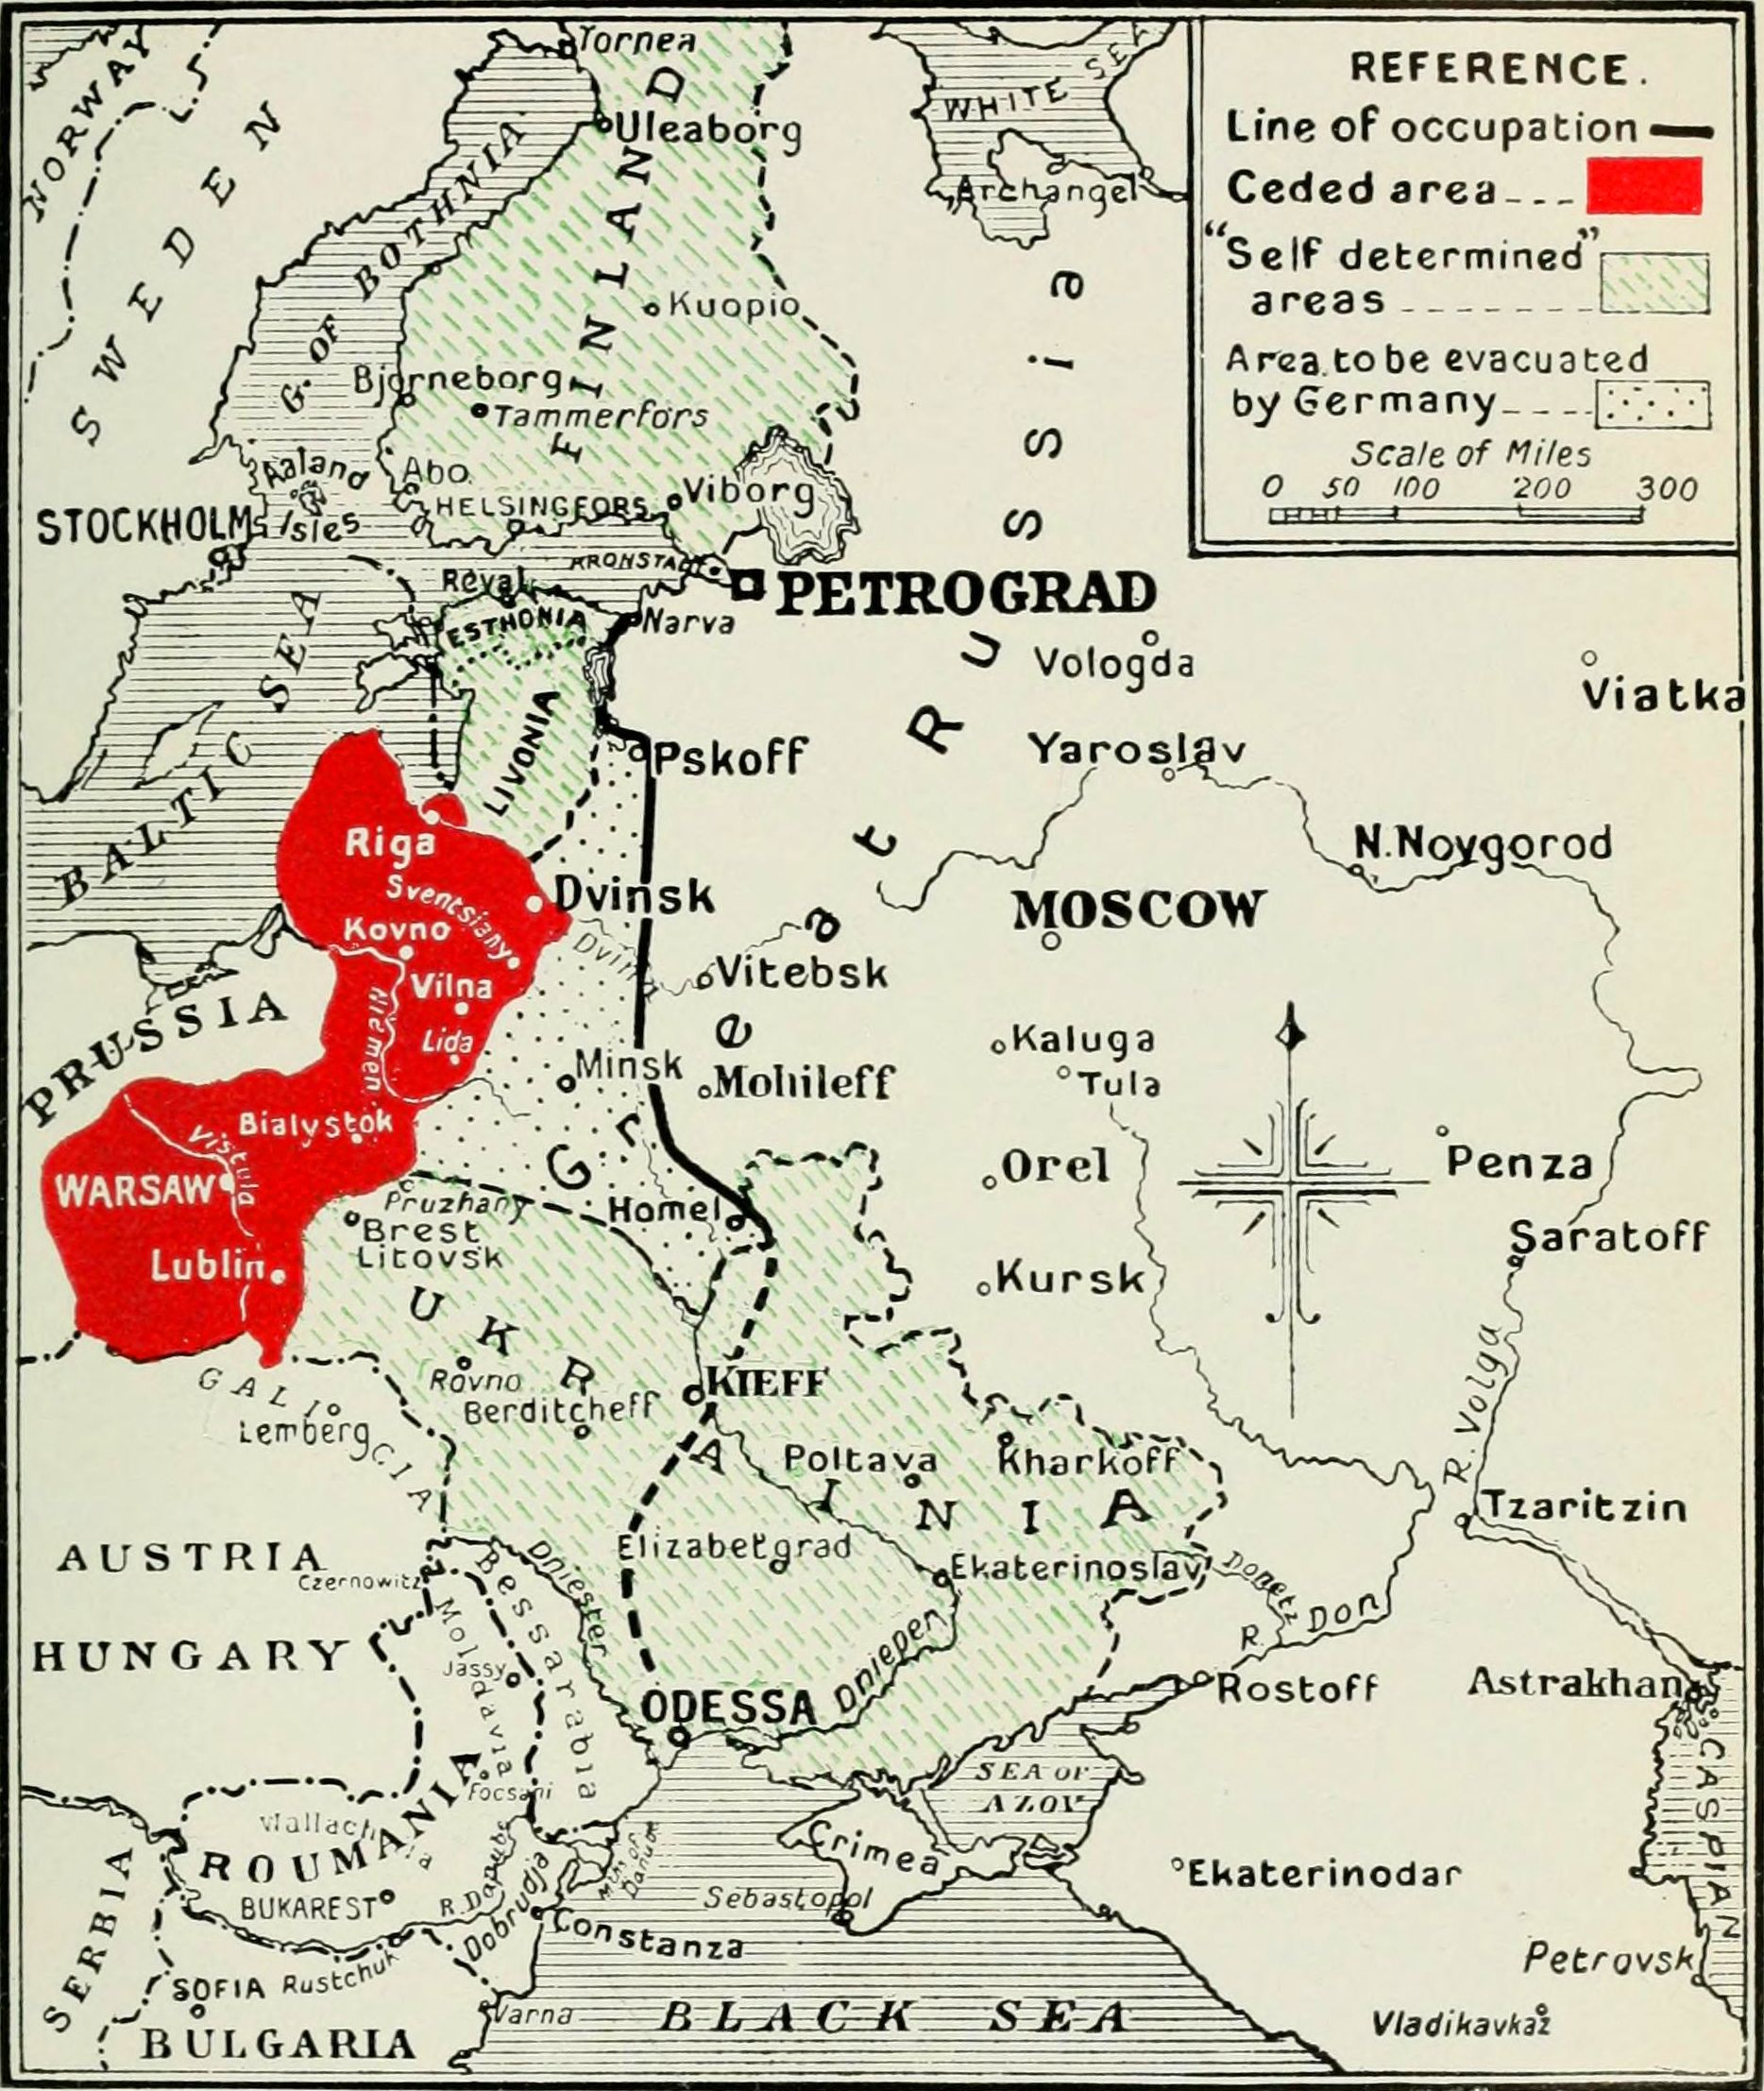 As agreed to by the German Empire and Bolshevik Russia in 1917